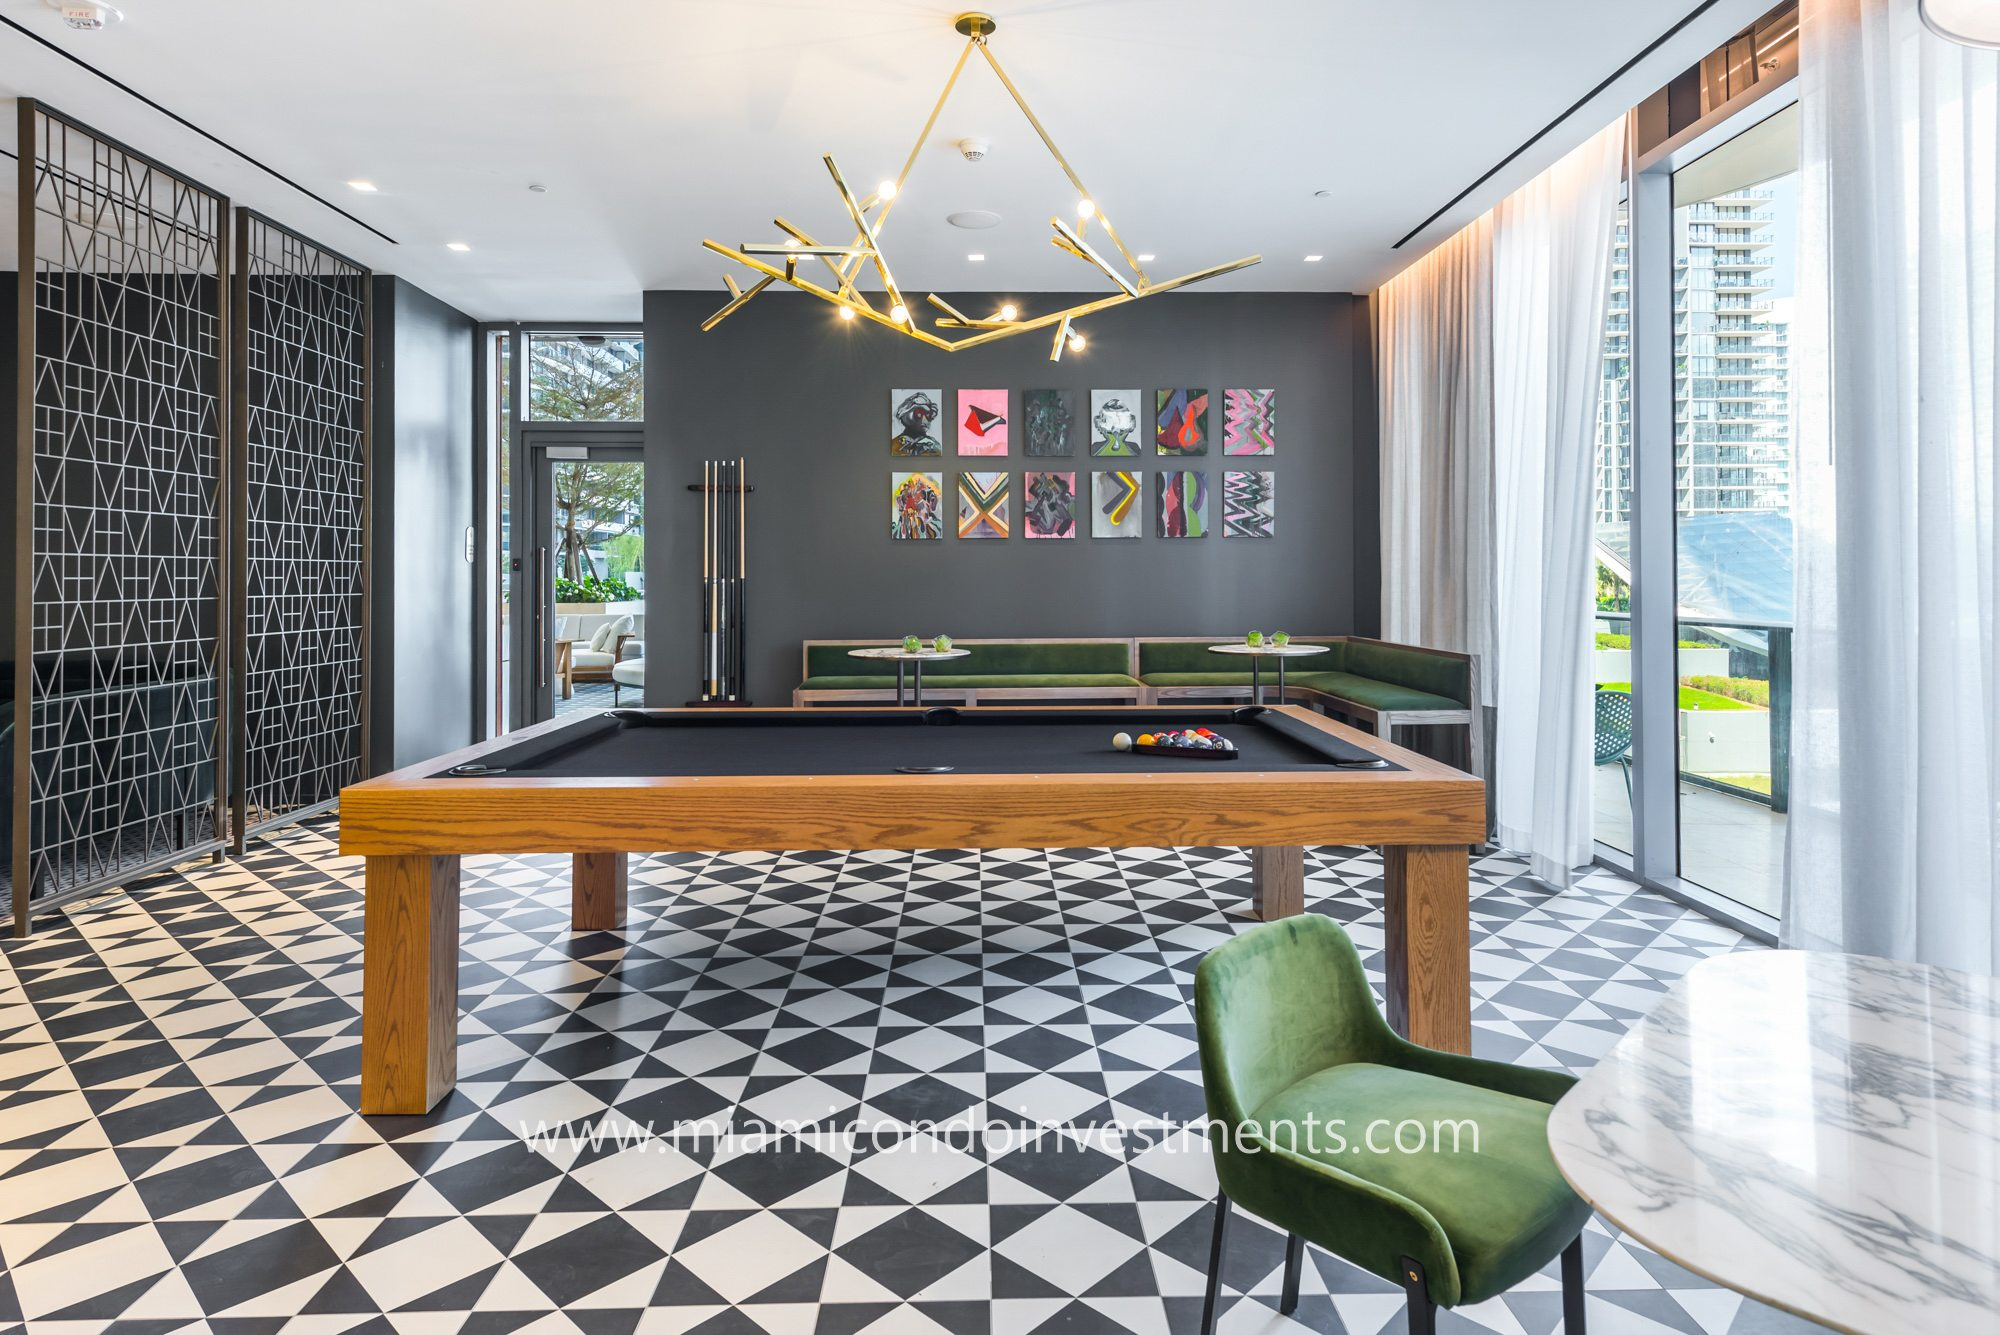 SLS Lux billiards room